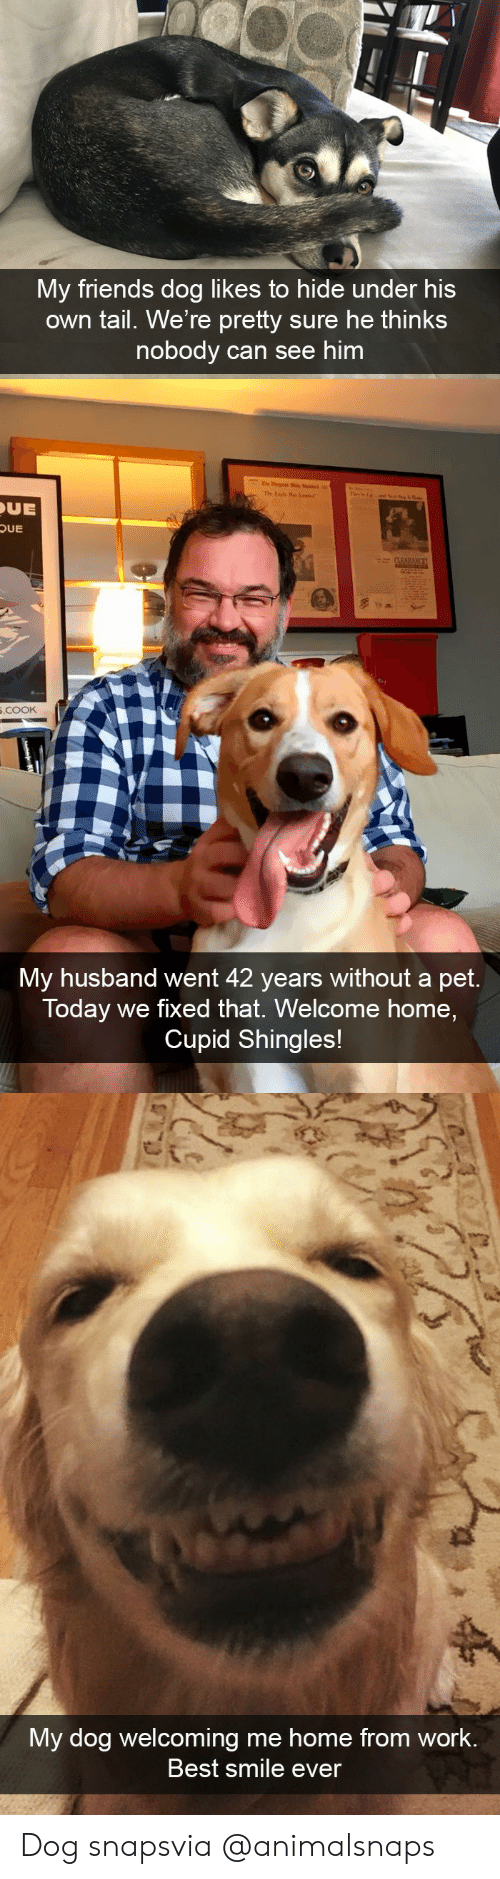 welcome-home: My friends dog likes to hide under his  own tail. We're pretty sure he thinks  nobody can see him   UE  OUE  .cooK  My husband went 42 years without a pet.  Today we fixed that. Welcome home,  Cupid Shingles!   My dog welcoming me home from work  Best smile ever Dog snapsvia @animalsnaps